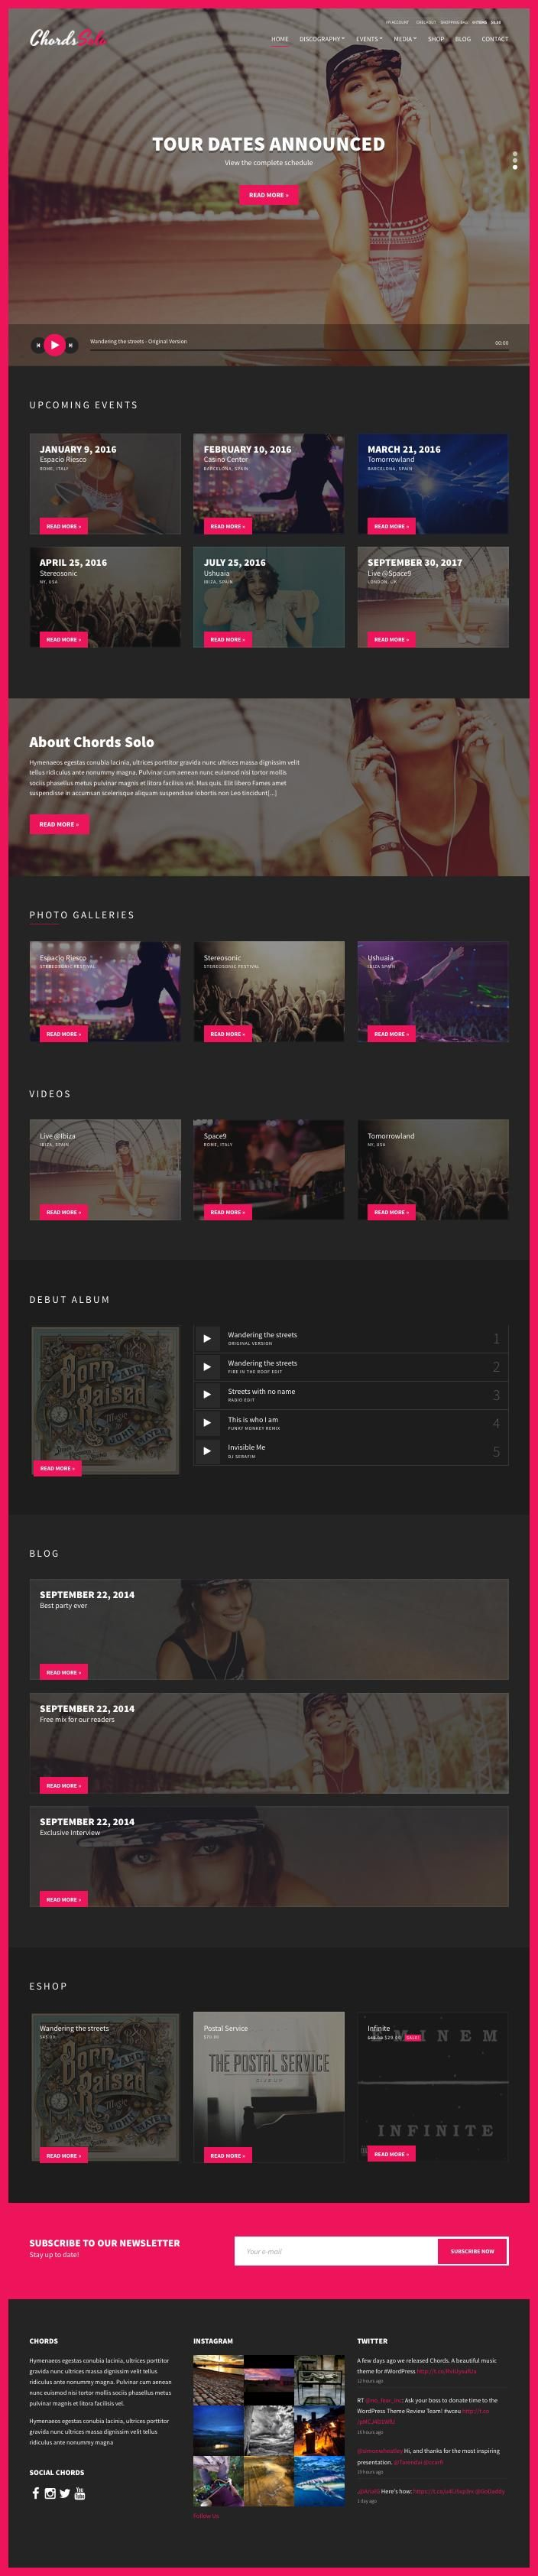 Chords is an awesome responsive WordPress music theme from cssigniter developer club and it has been showcased on ThemeForest theme selling place. Chords theme is specially designed for musicians, solo artists, DJ clubs and radio stations websites...